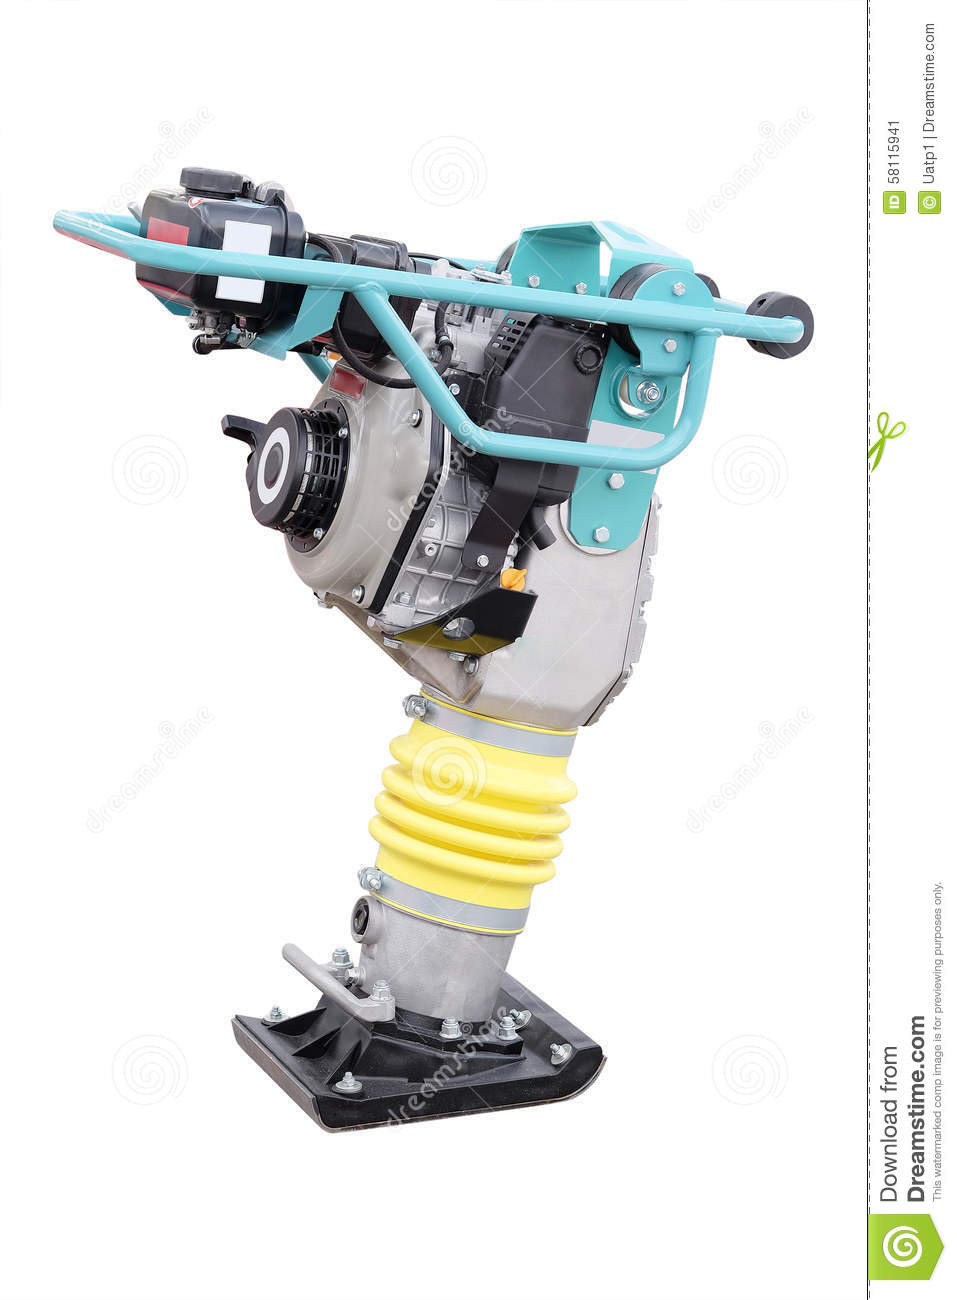 Manual Road Repair Machine Stock Image  Image Of